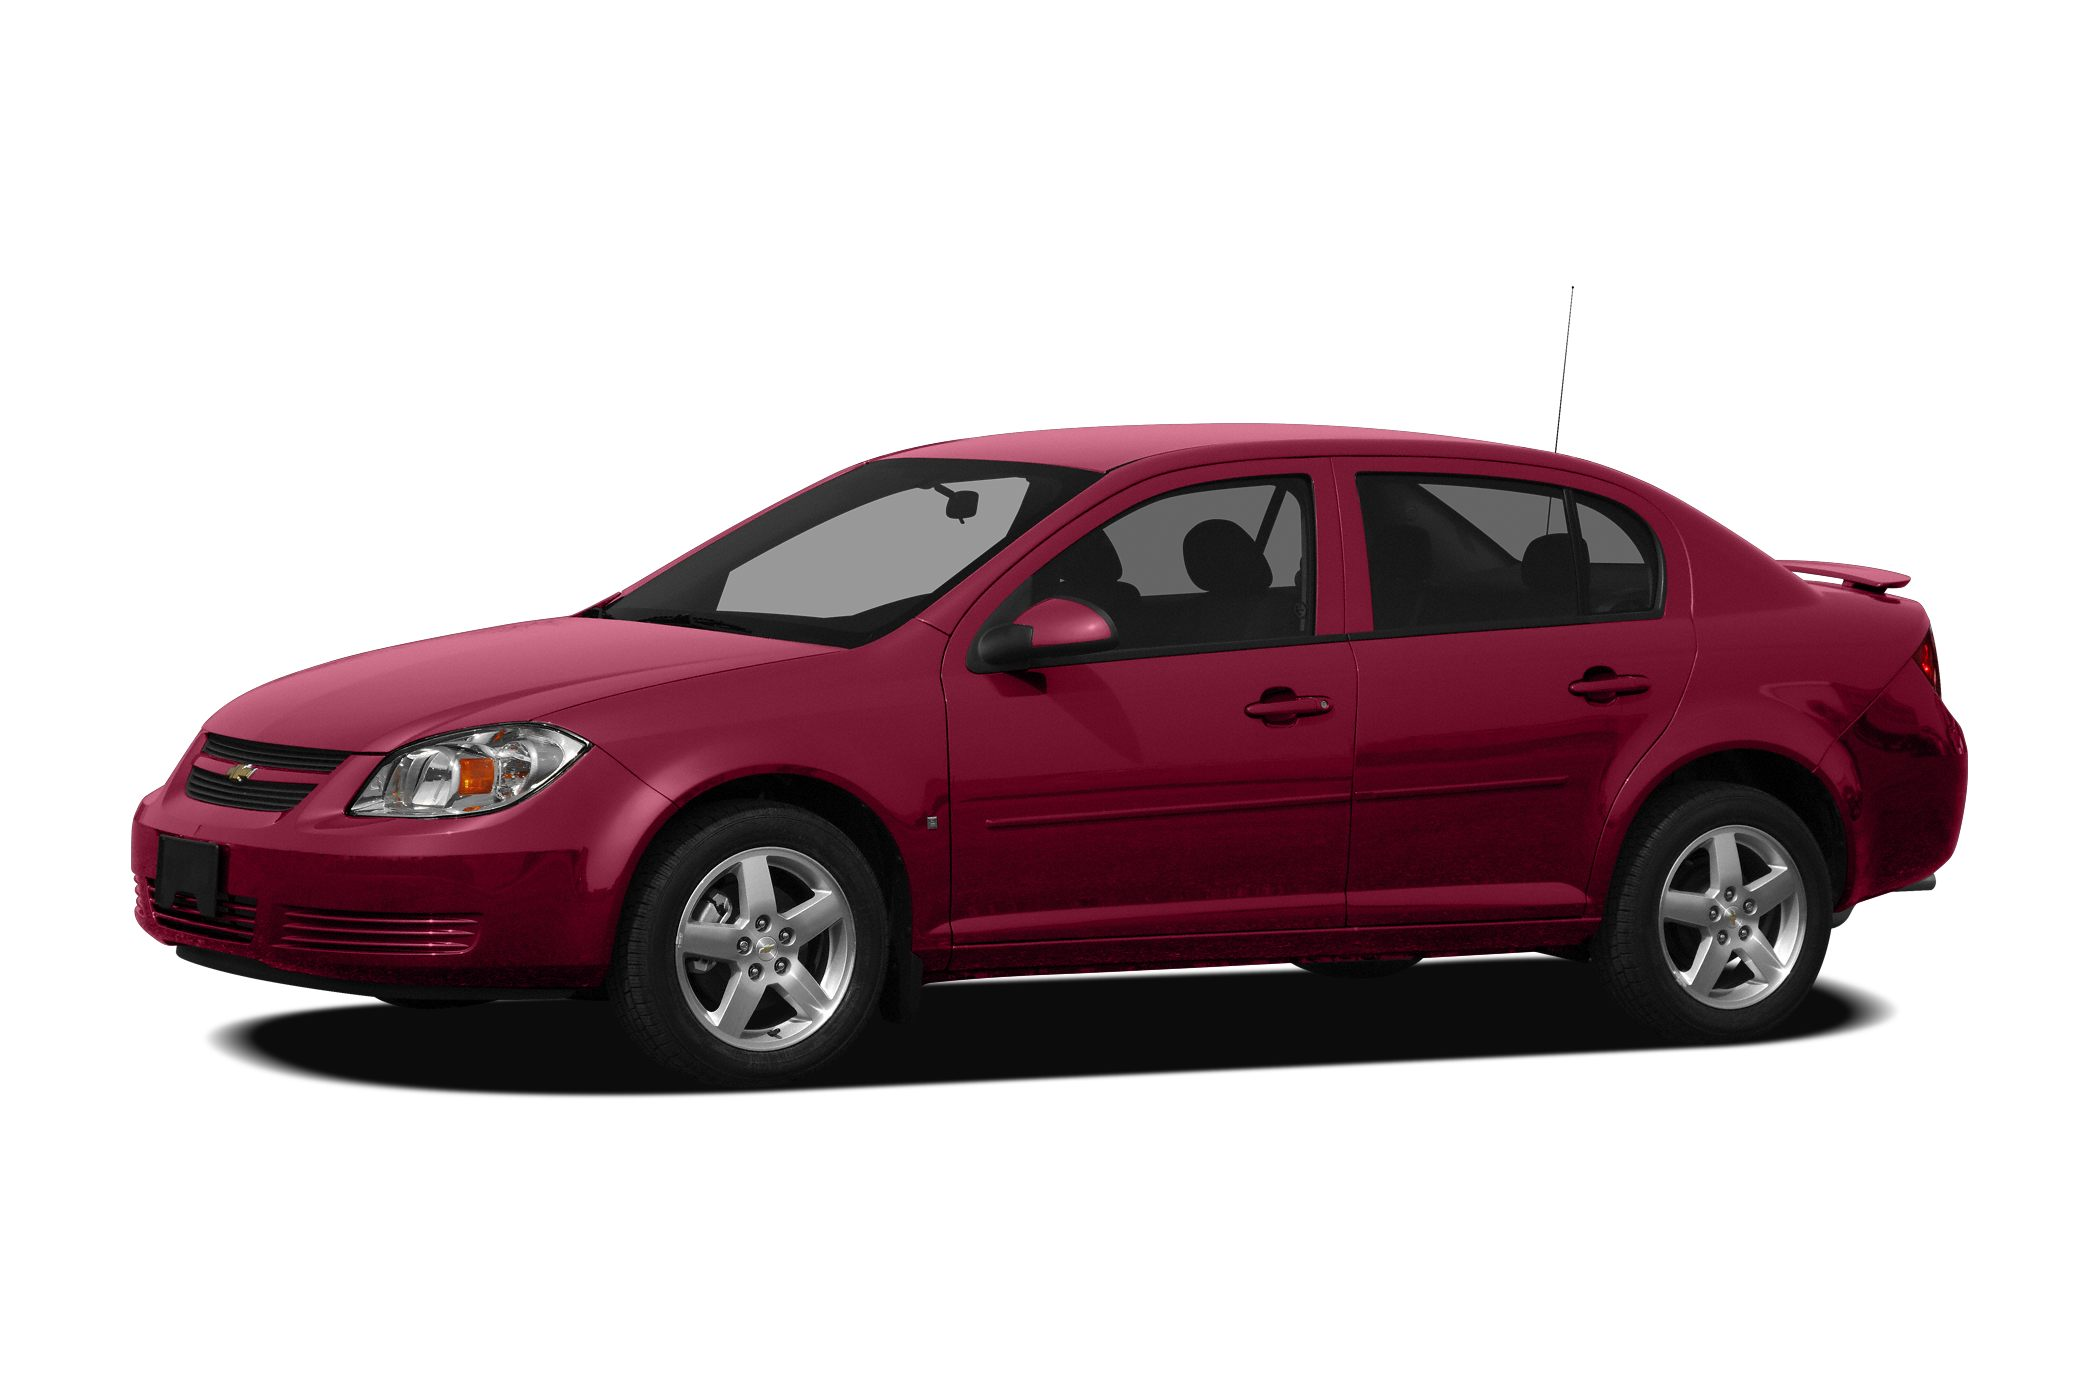 2009 Chevrolet Cobalt LT 3-DAY EXCHANGEONE PRICE STOP NO HASSLE NO HAGGLE CAR BUYING EXPERI